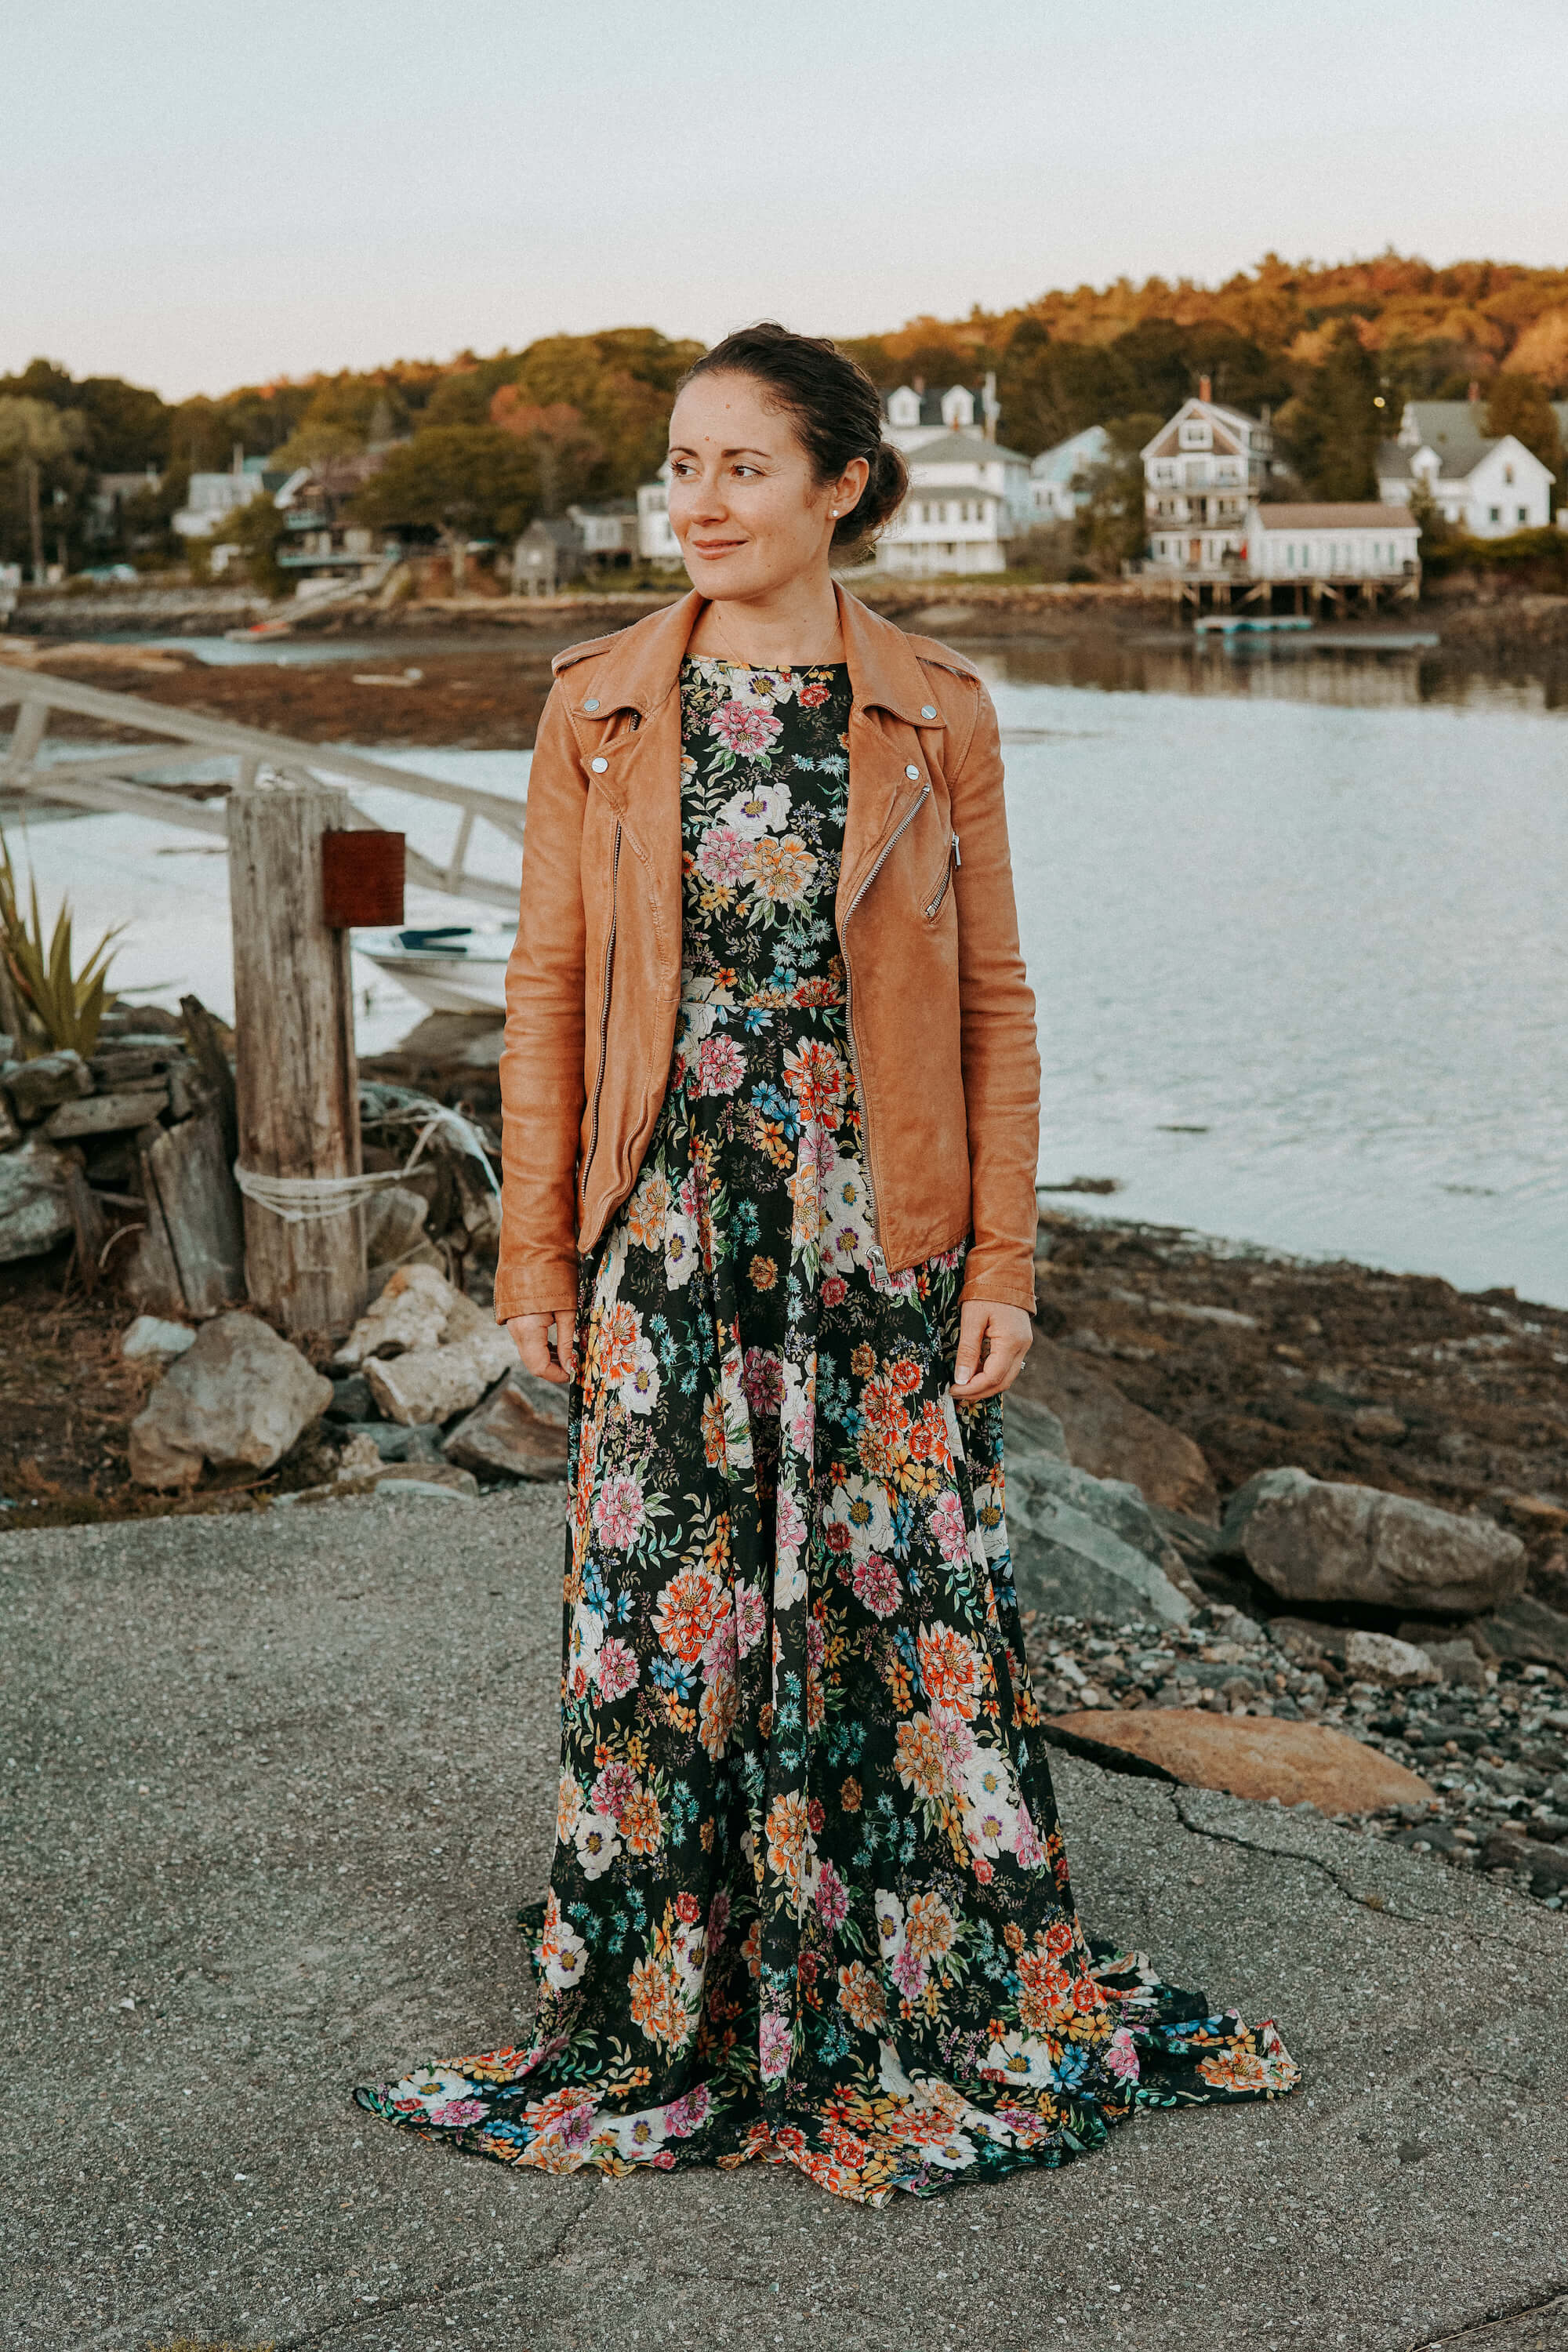 Dark Florals for Fall Boothbay Harbor Maine by Modnitsa Styling